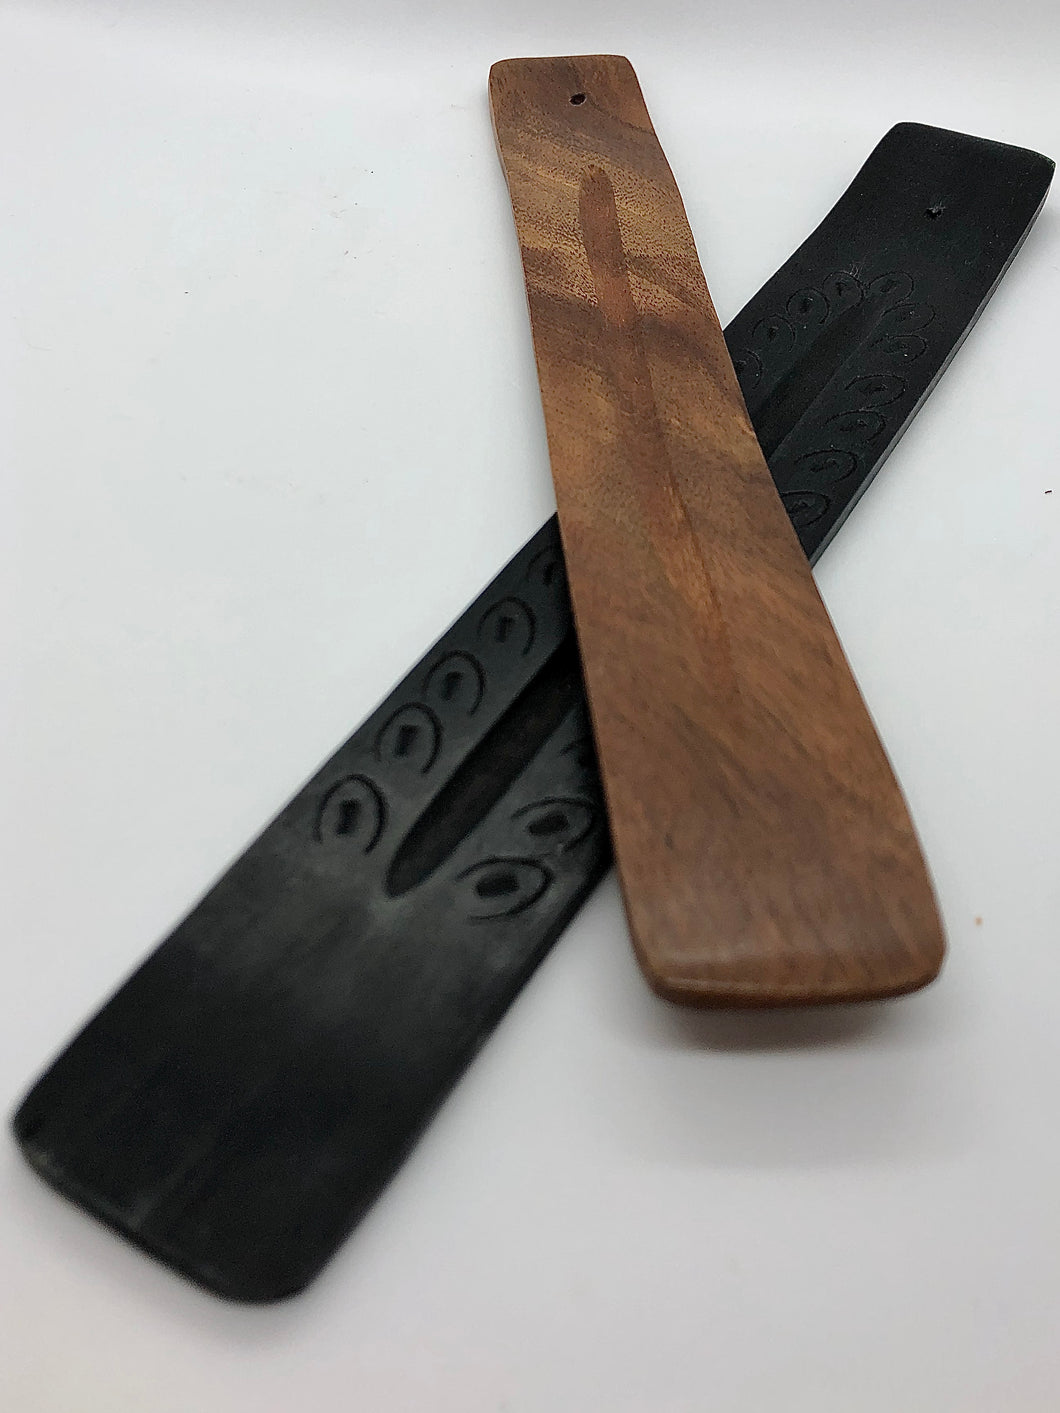 Wooden Incense Burners (Pack of 2)